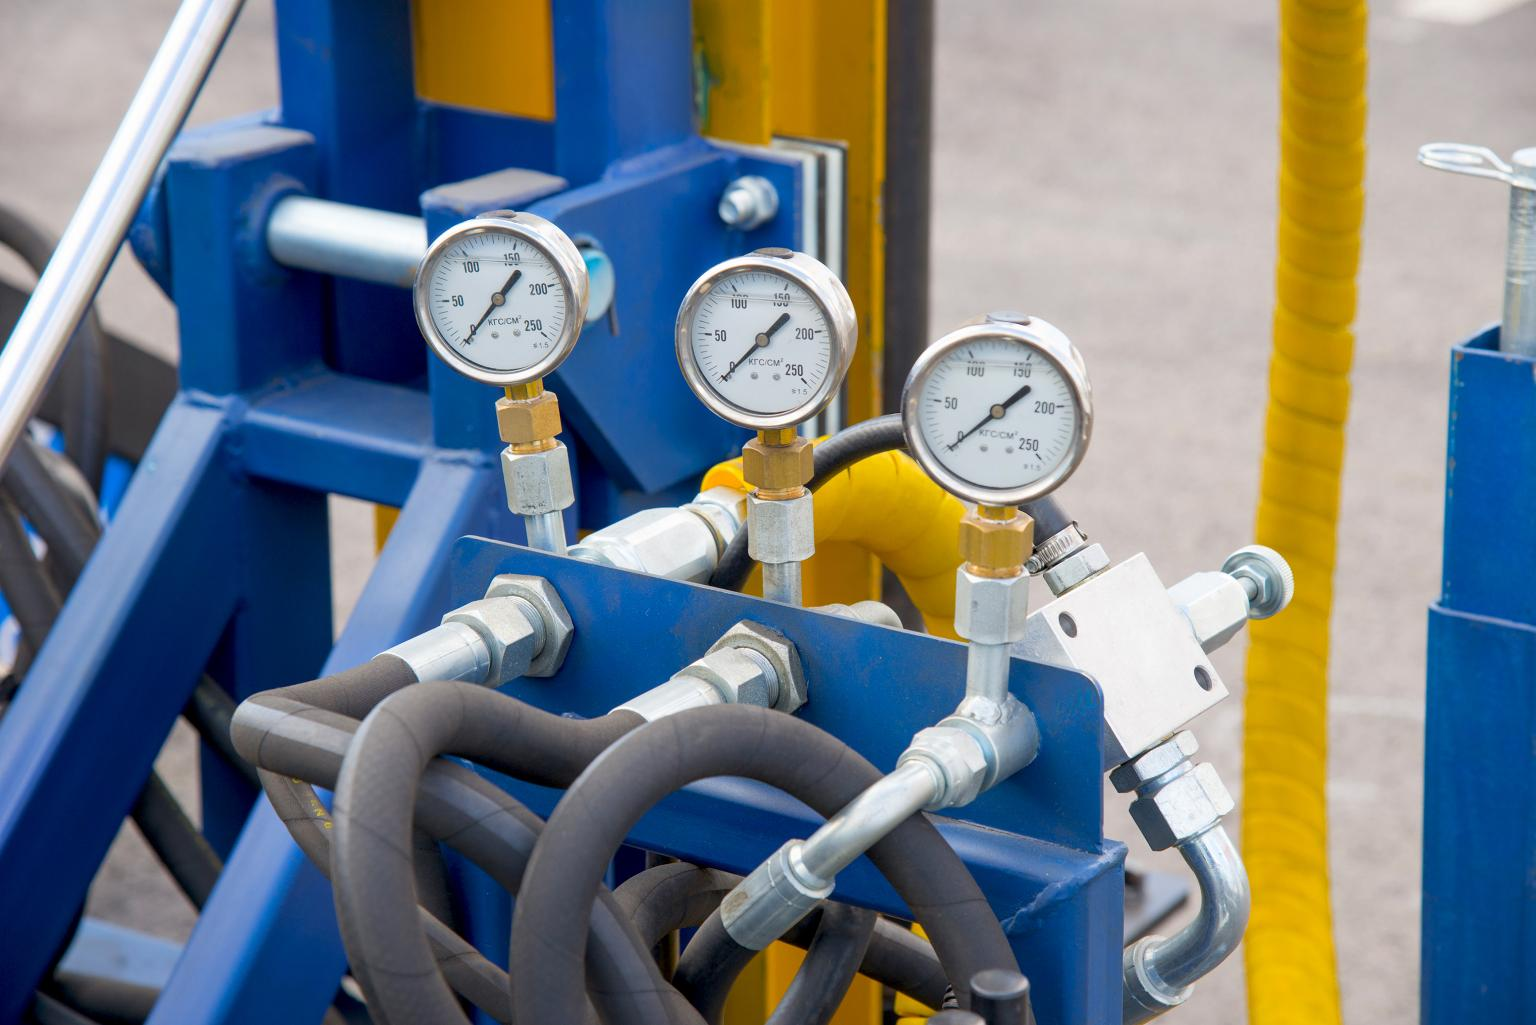 Hydraulic systems carry such great volumes of fluid that even small leaks can be catastrophic to the overall system